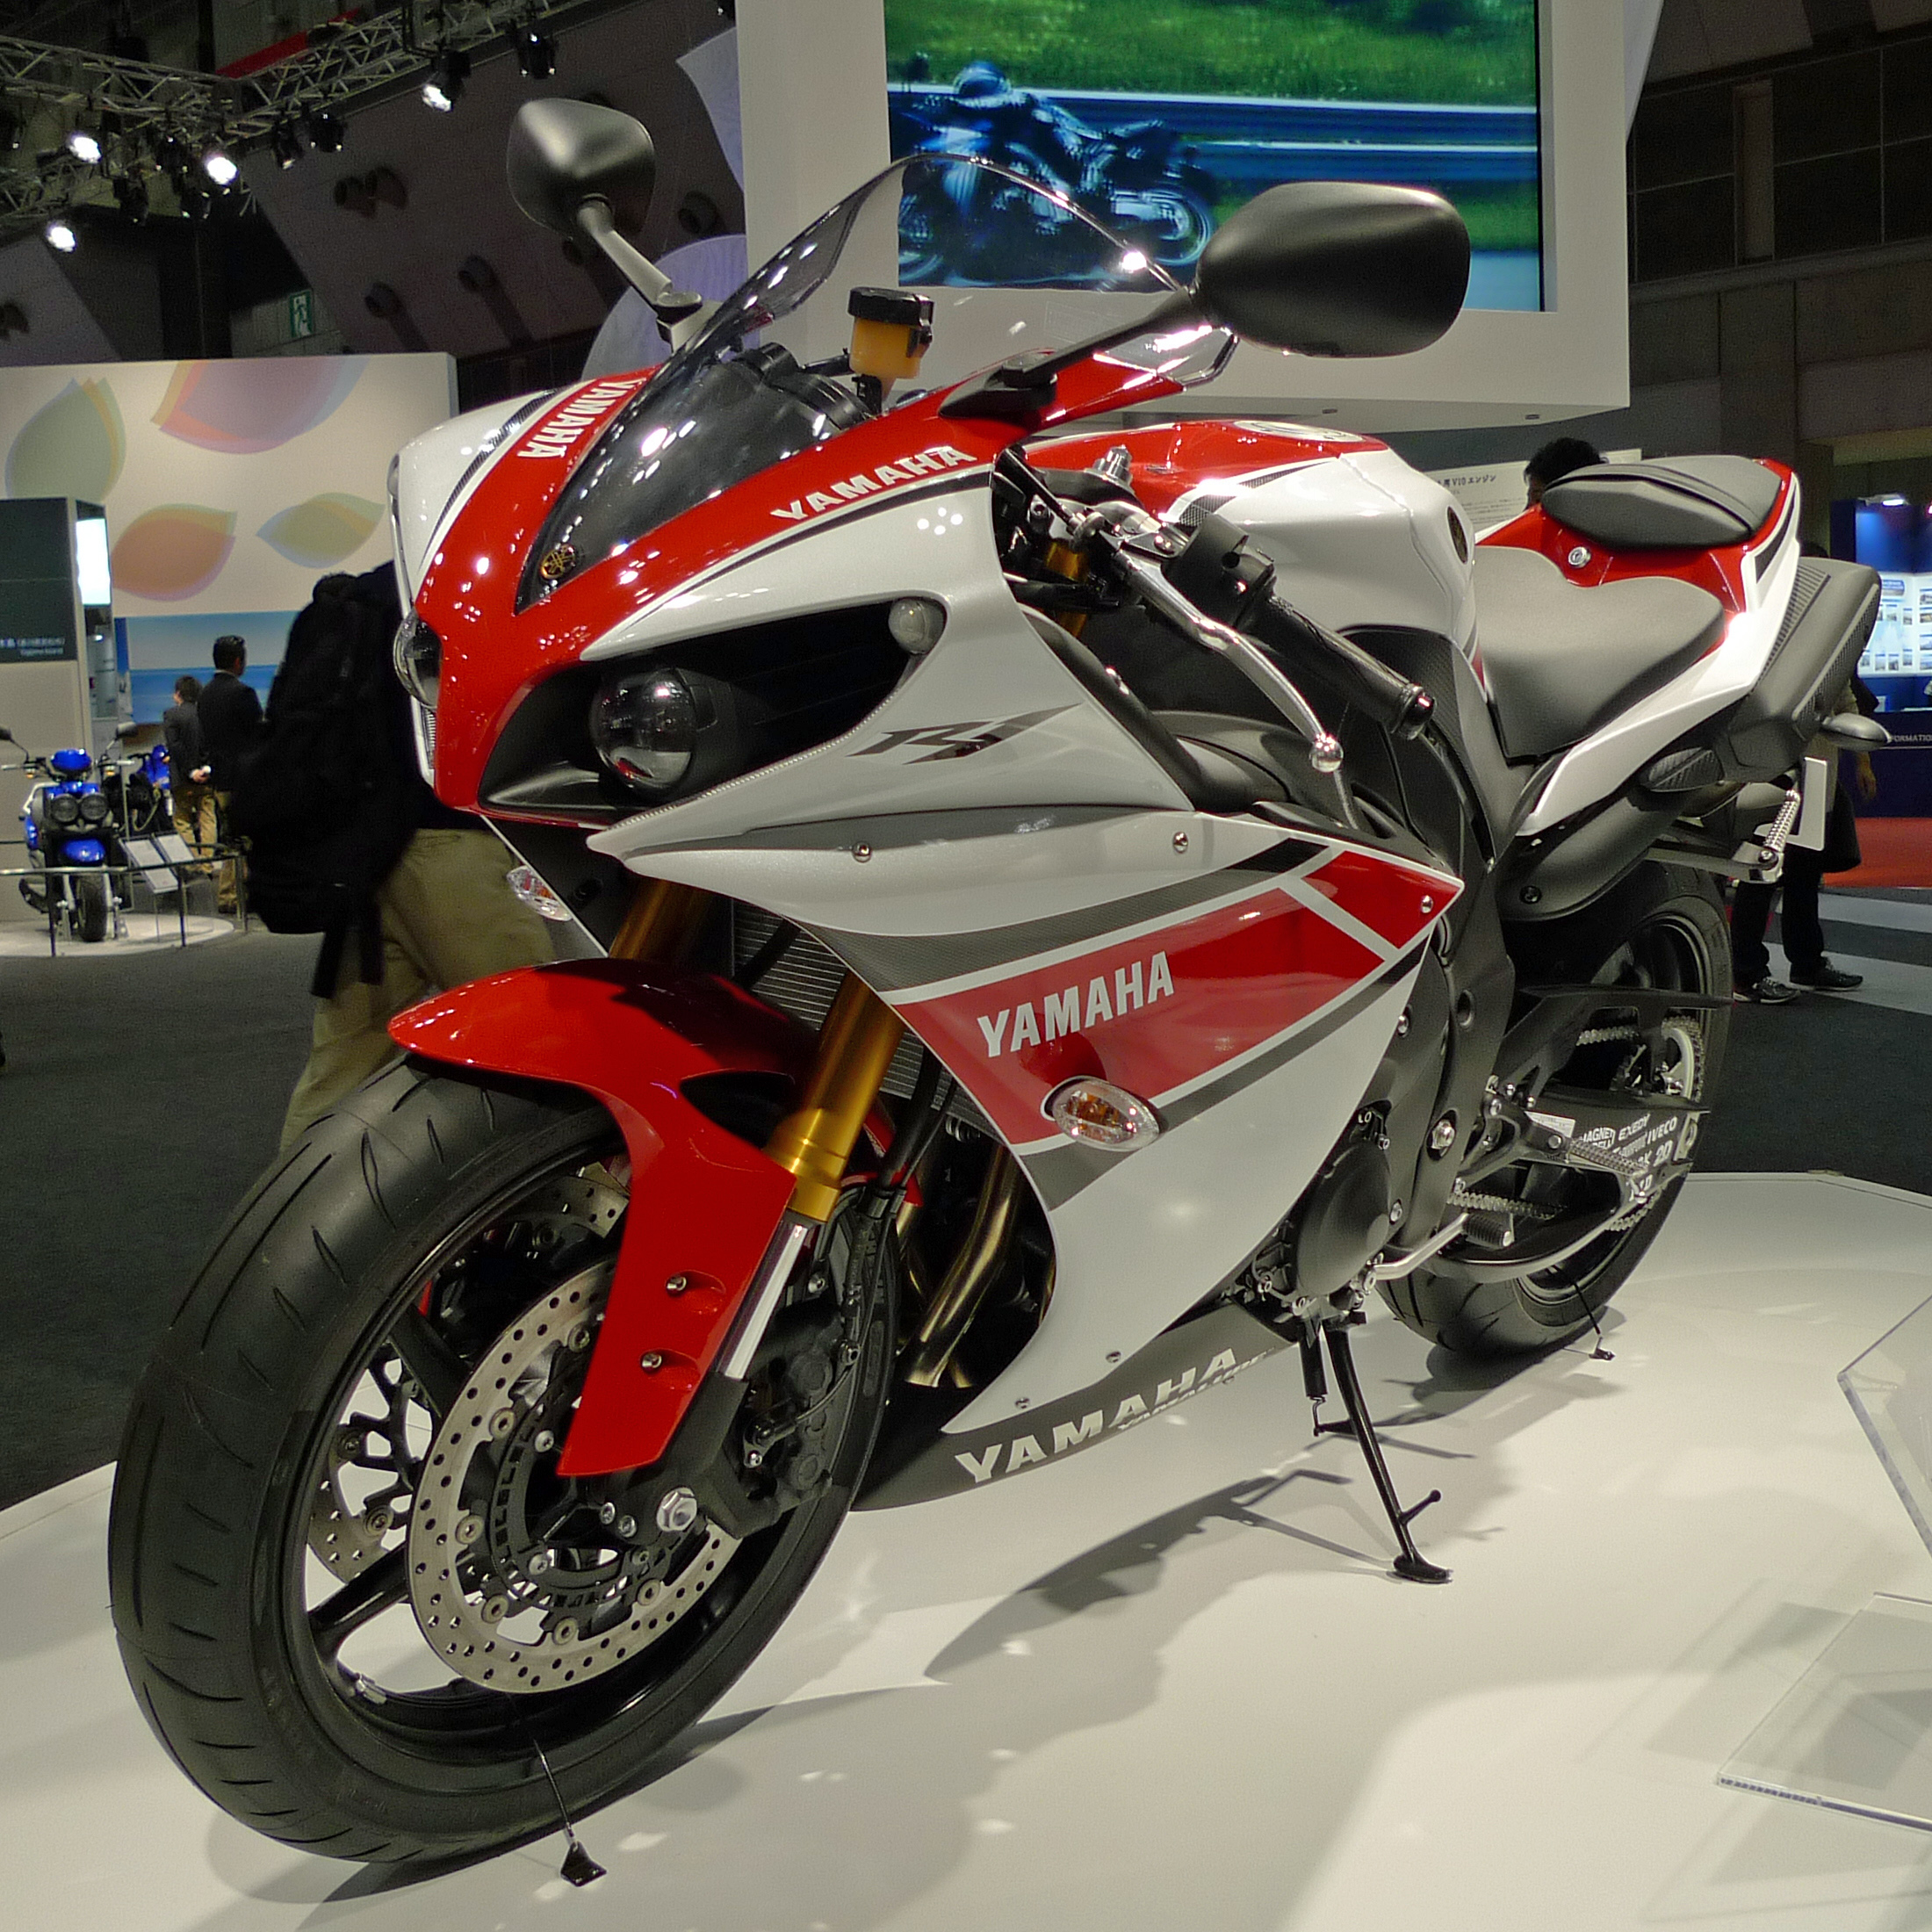 2013 yamaha yzf r1 pics specs and information for Yamaha r9 motorcycle